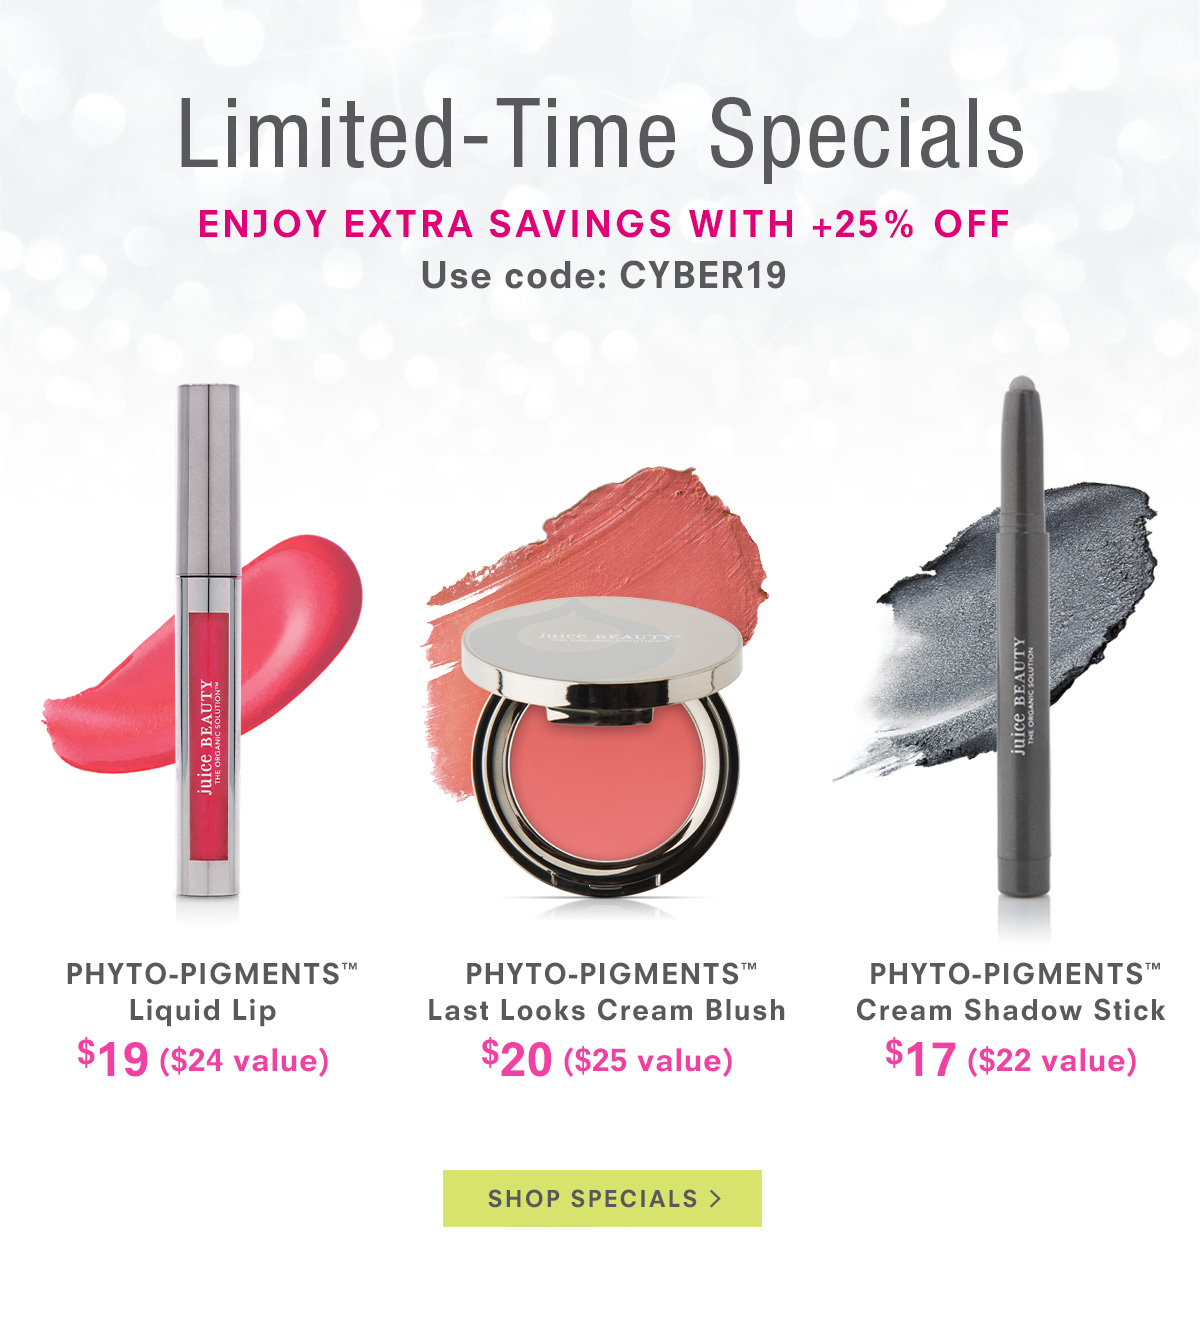 Limited-Time Specials - Enjoy Extra Savings